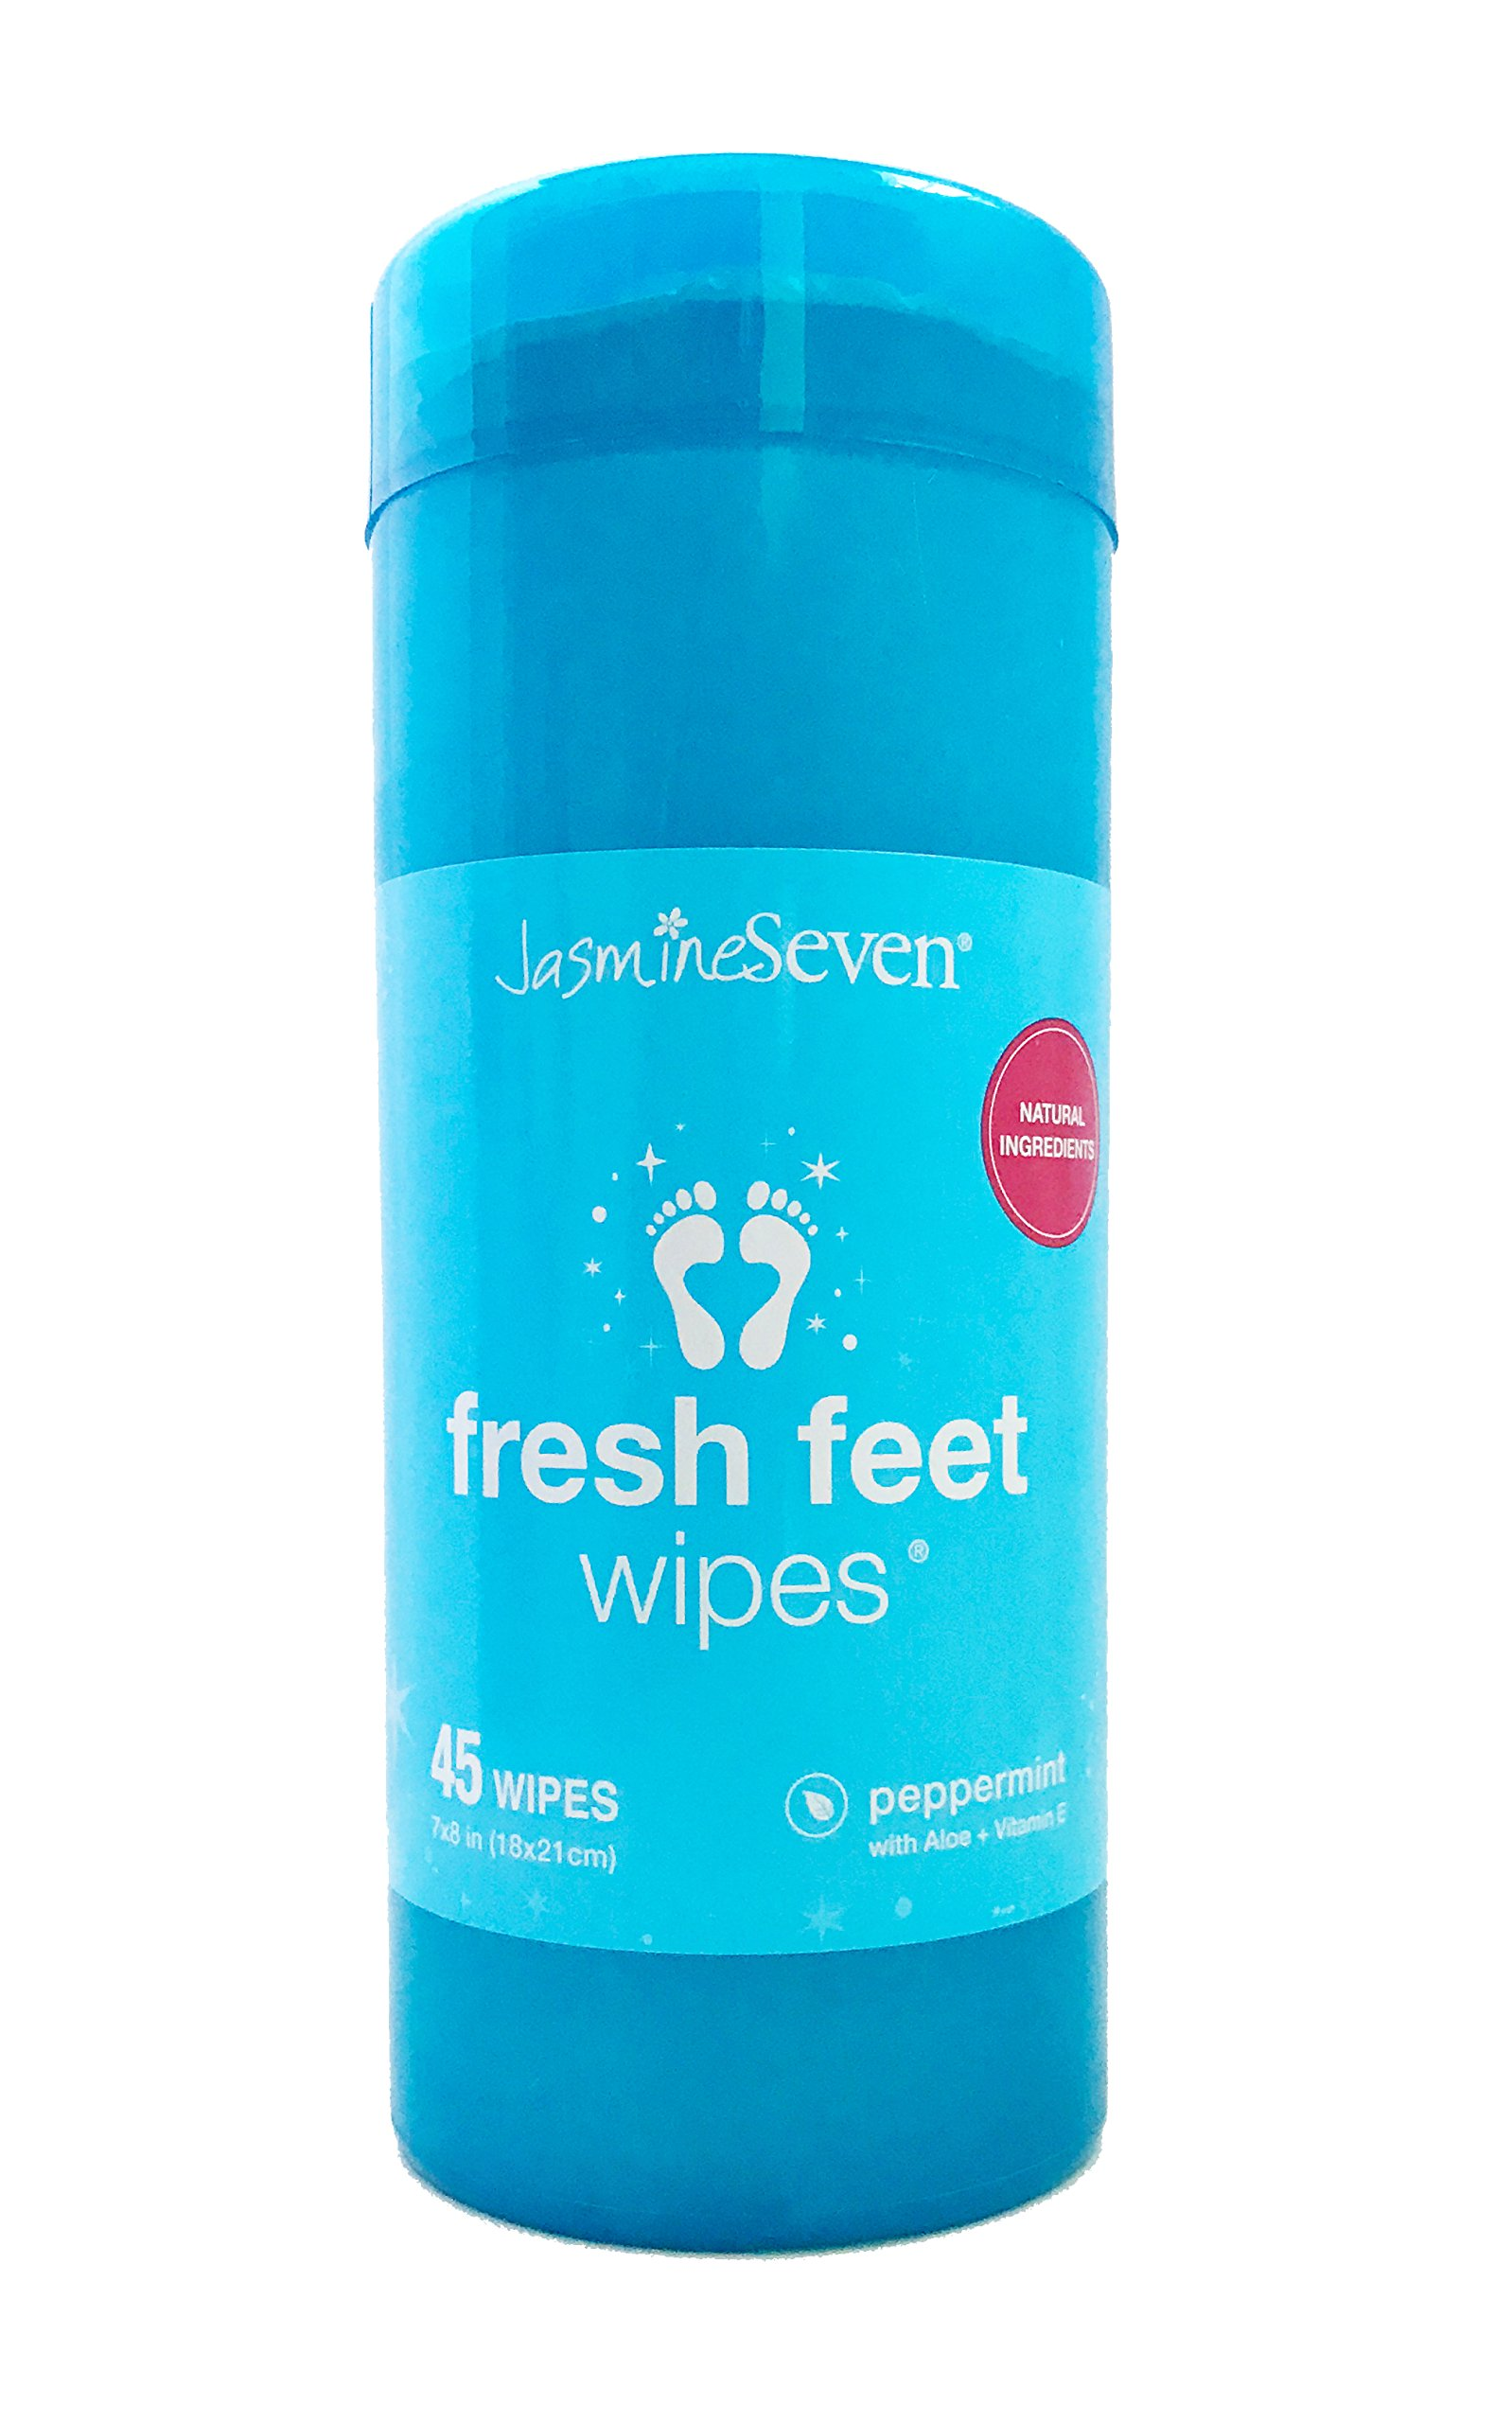 Fresh Feet Wipes - Peppermint - 45 Wipe Canister - by Jasmine Seven